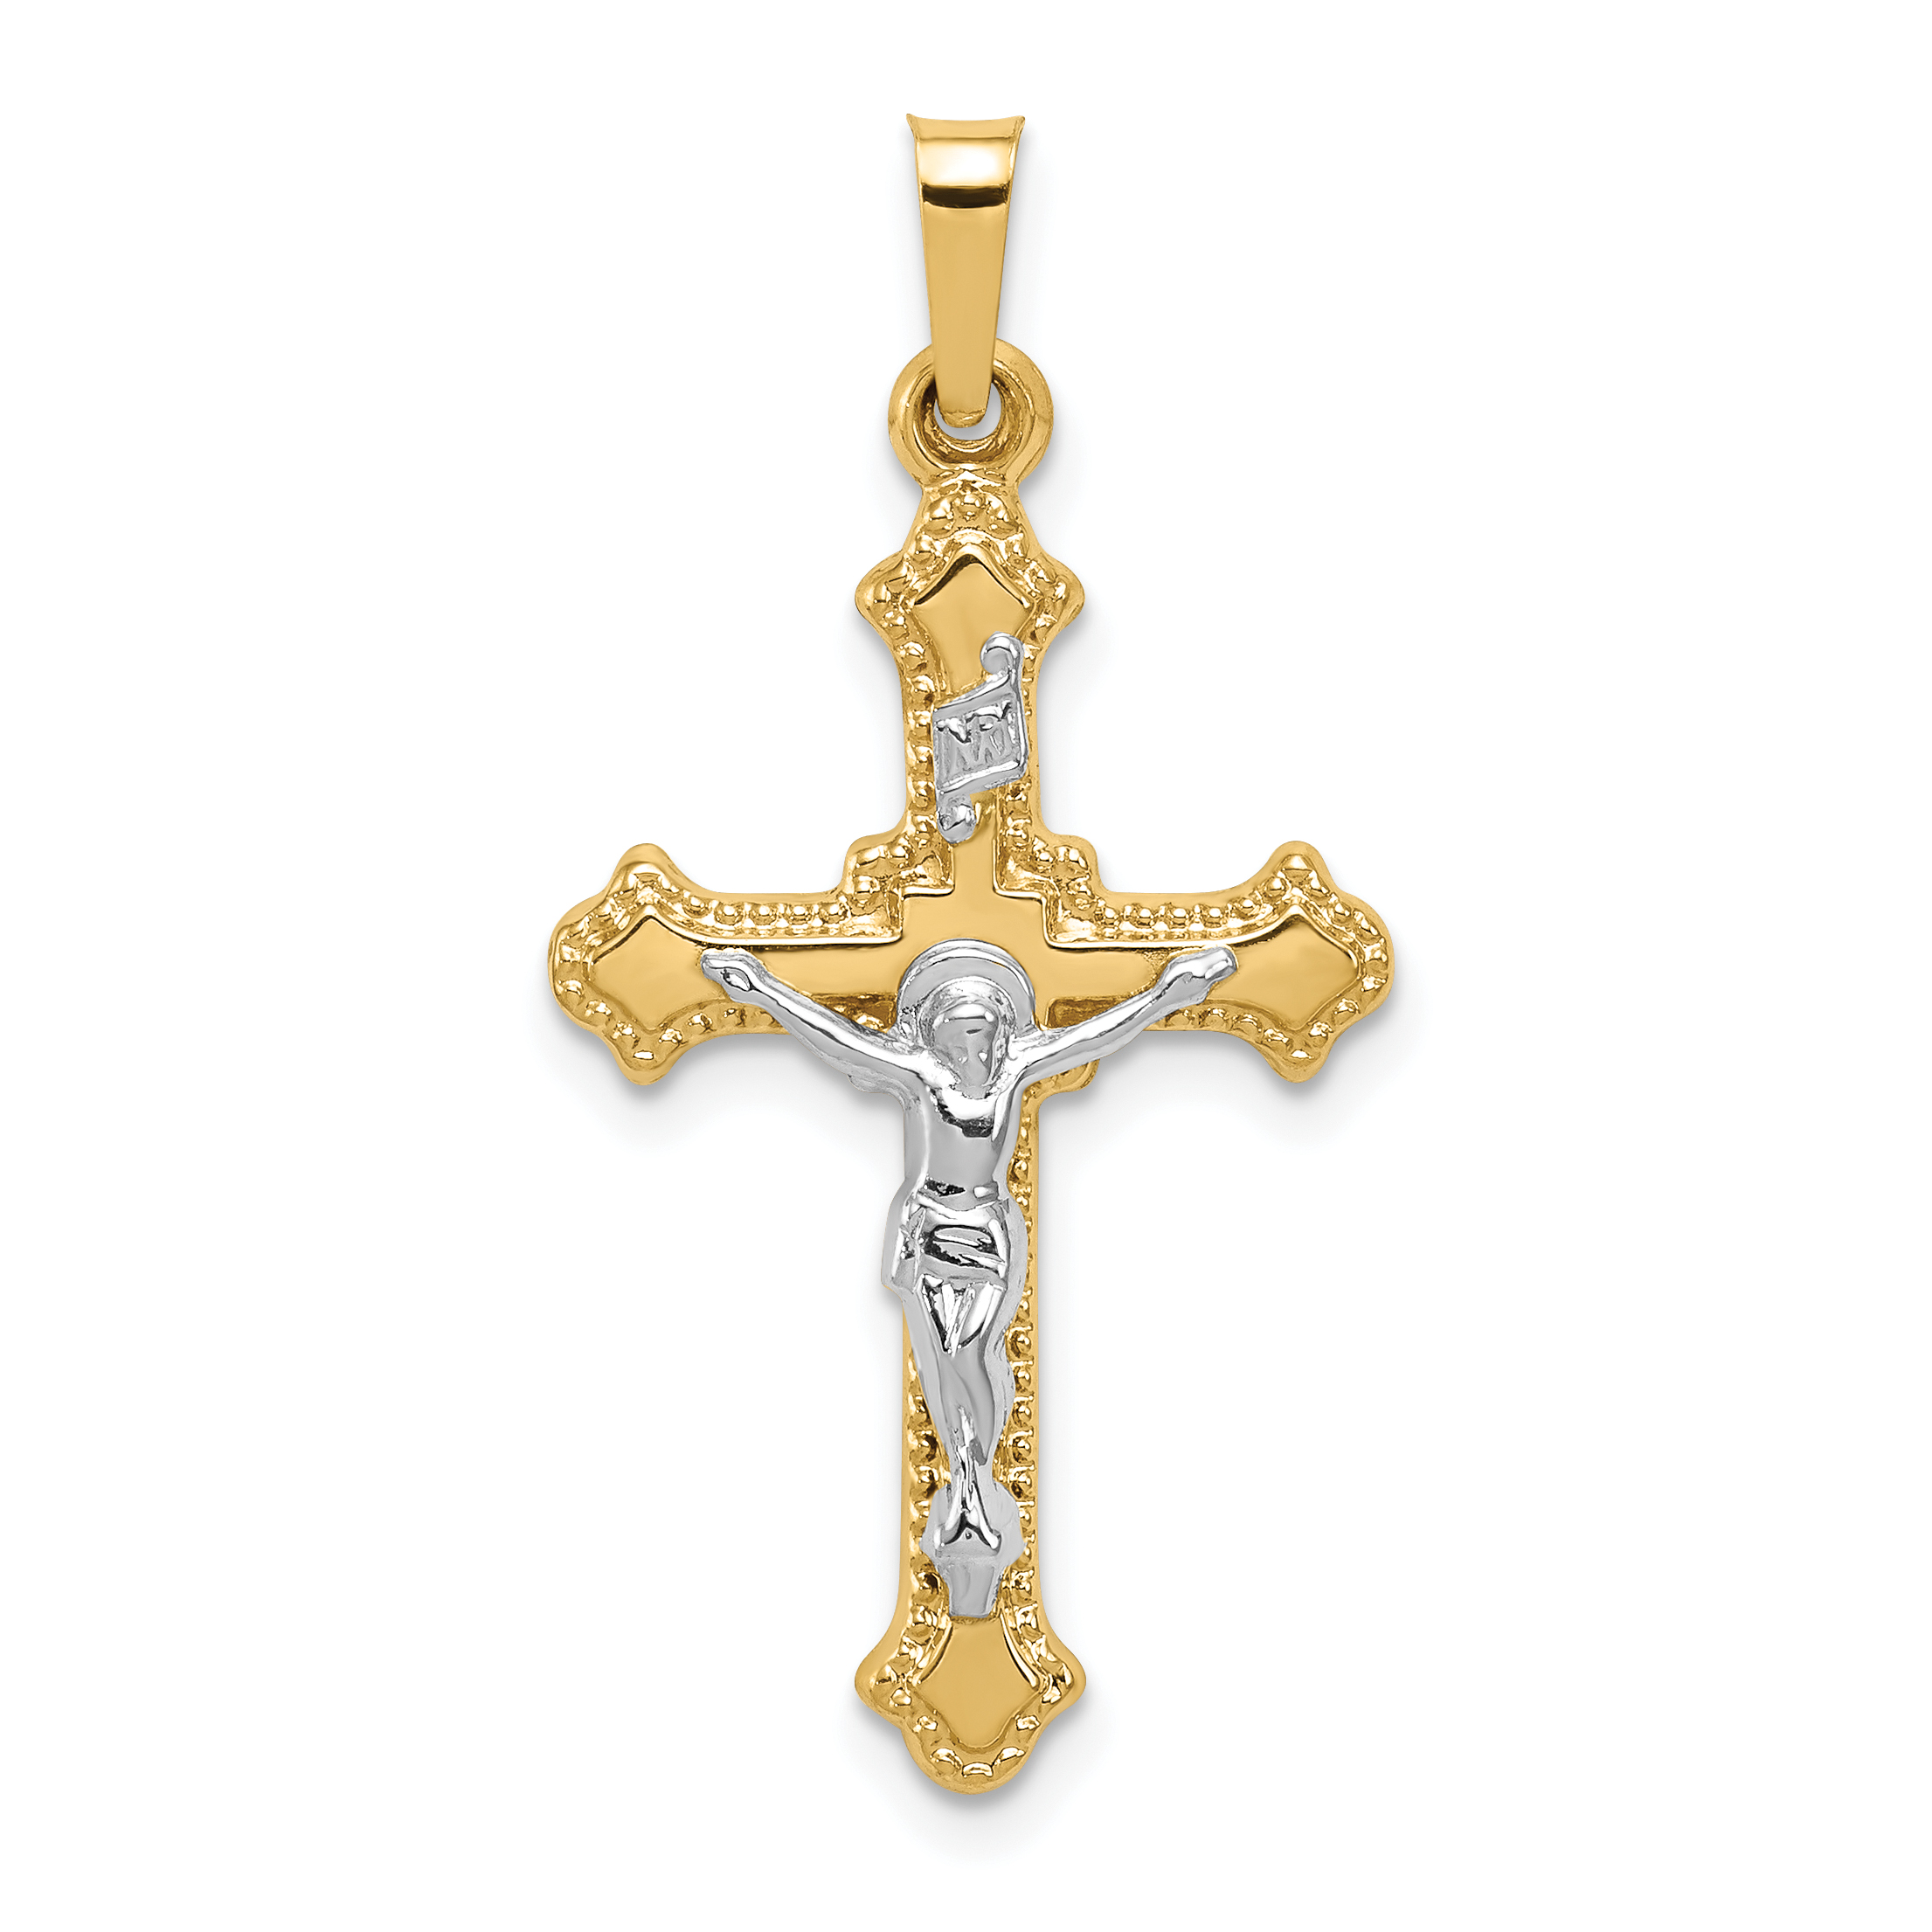 jewellers pendant in a gold yellow crucifix grahams image religious jewellery